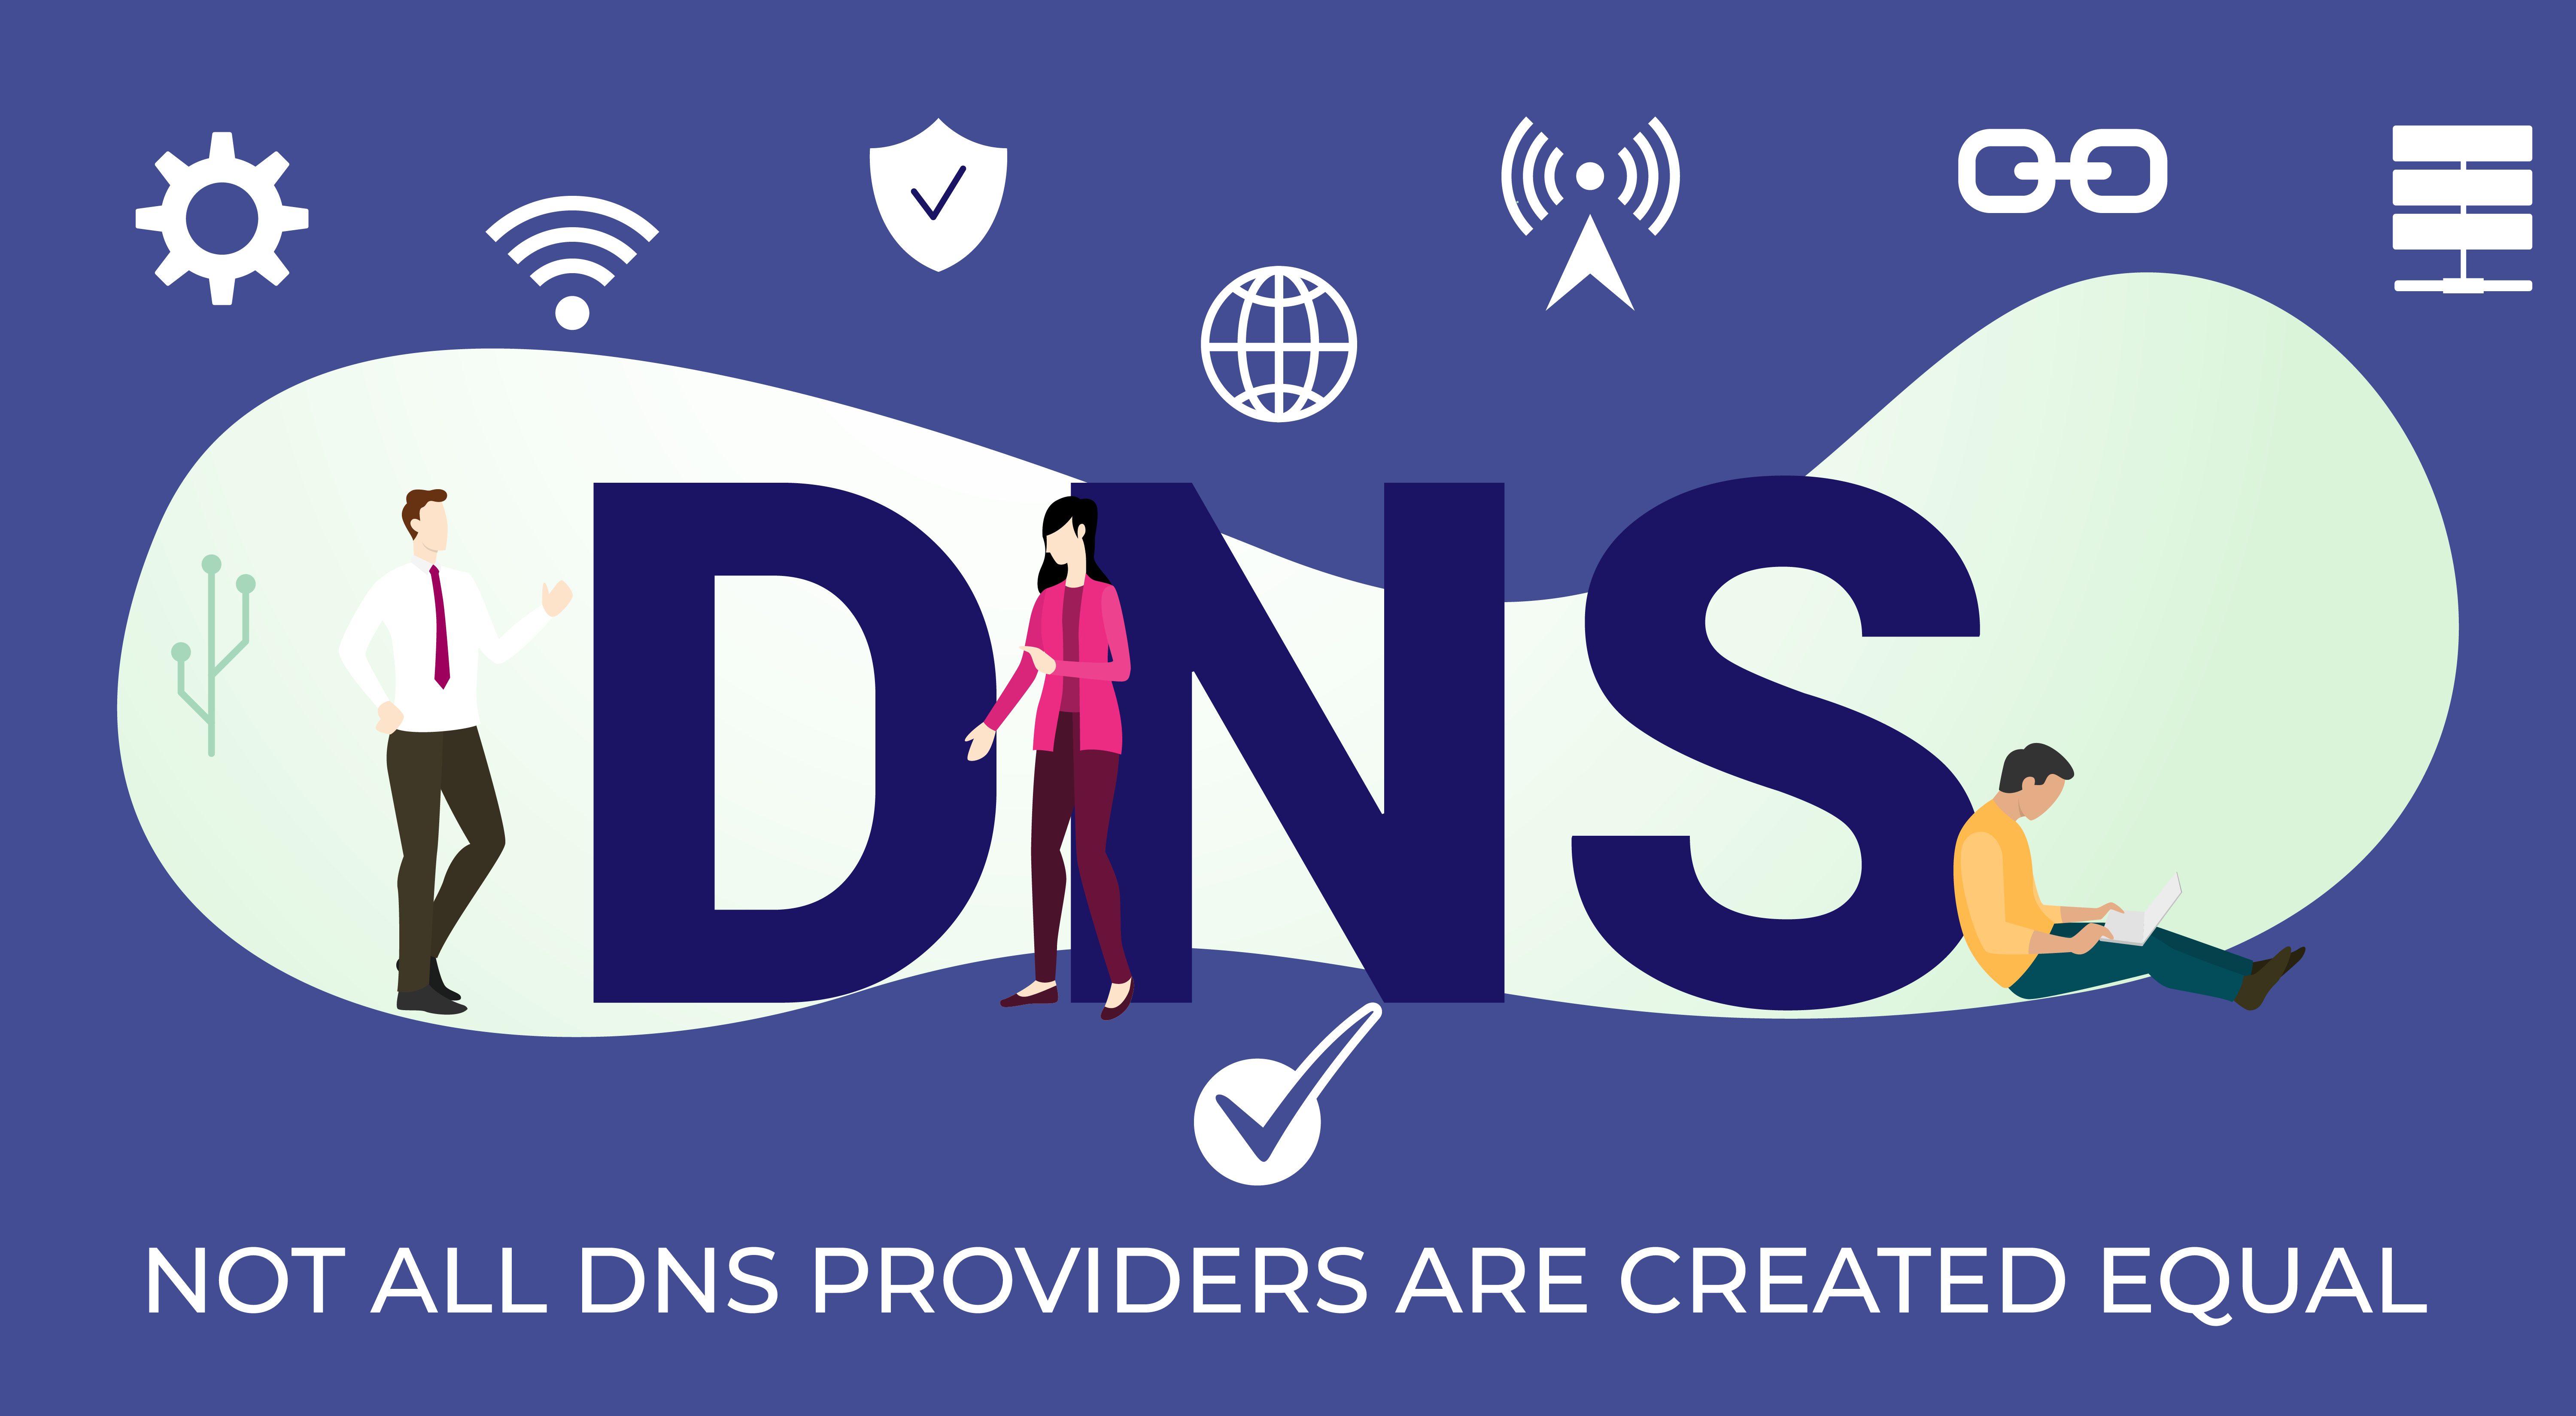 dns providers are not created equal